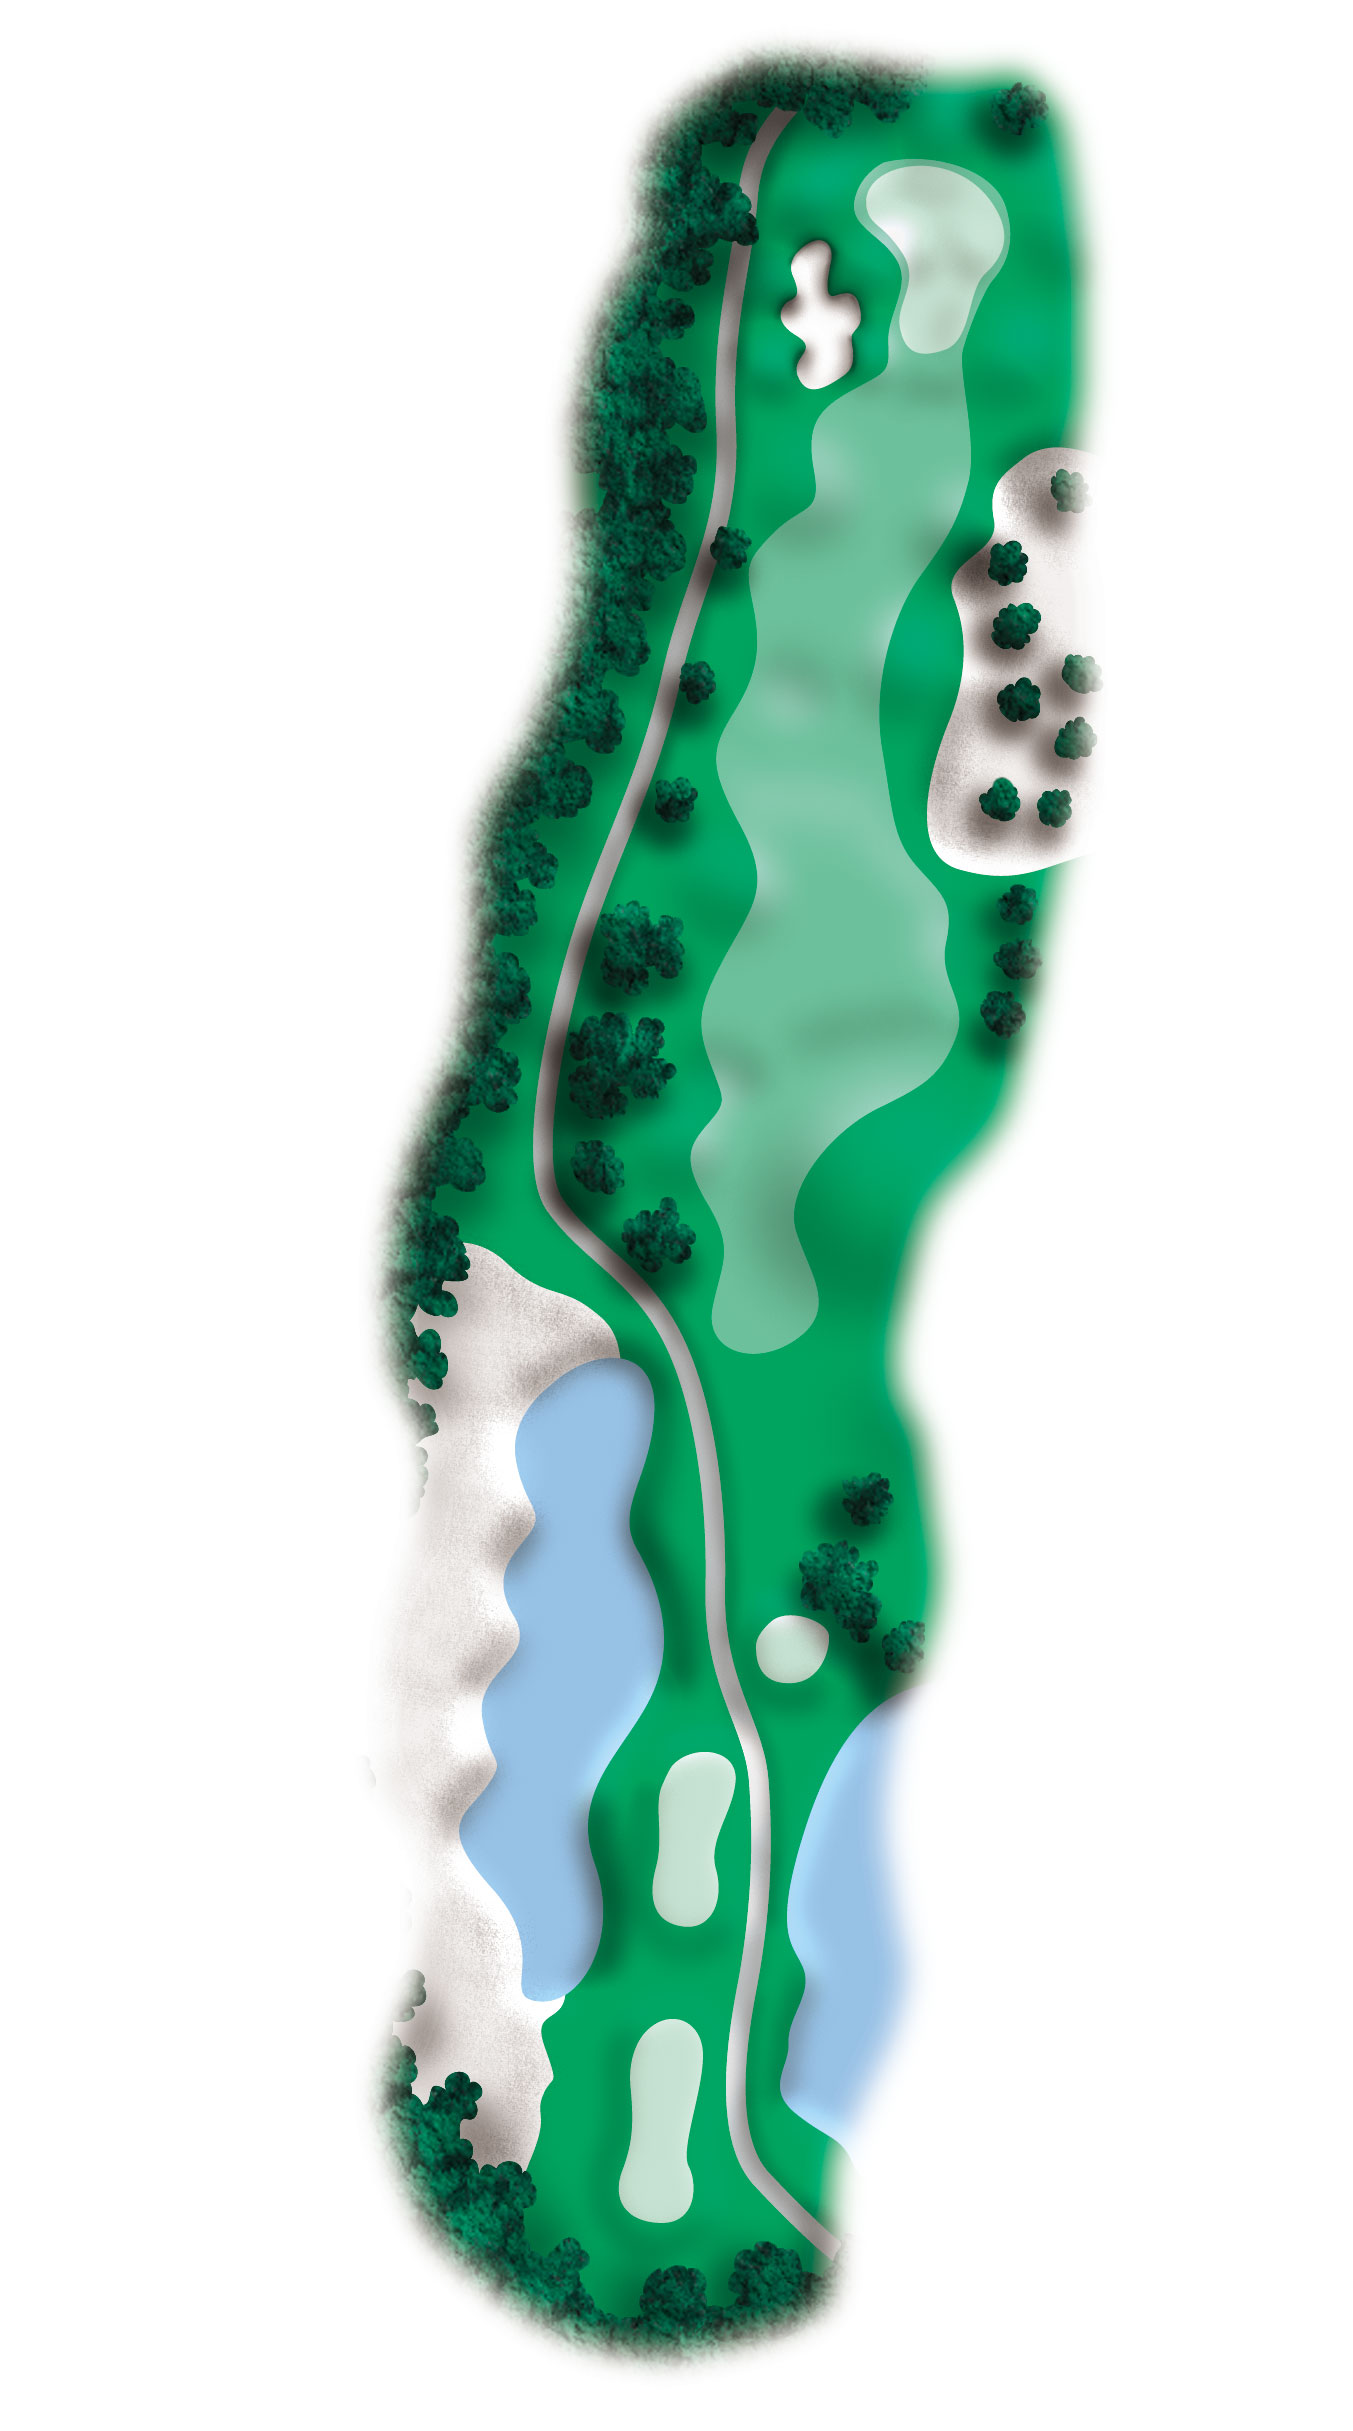 hole 7 diagram